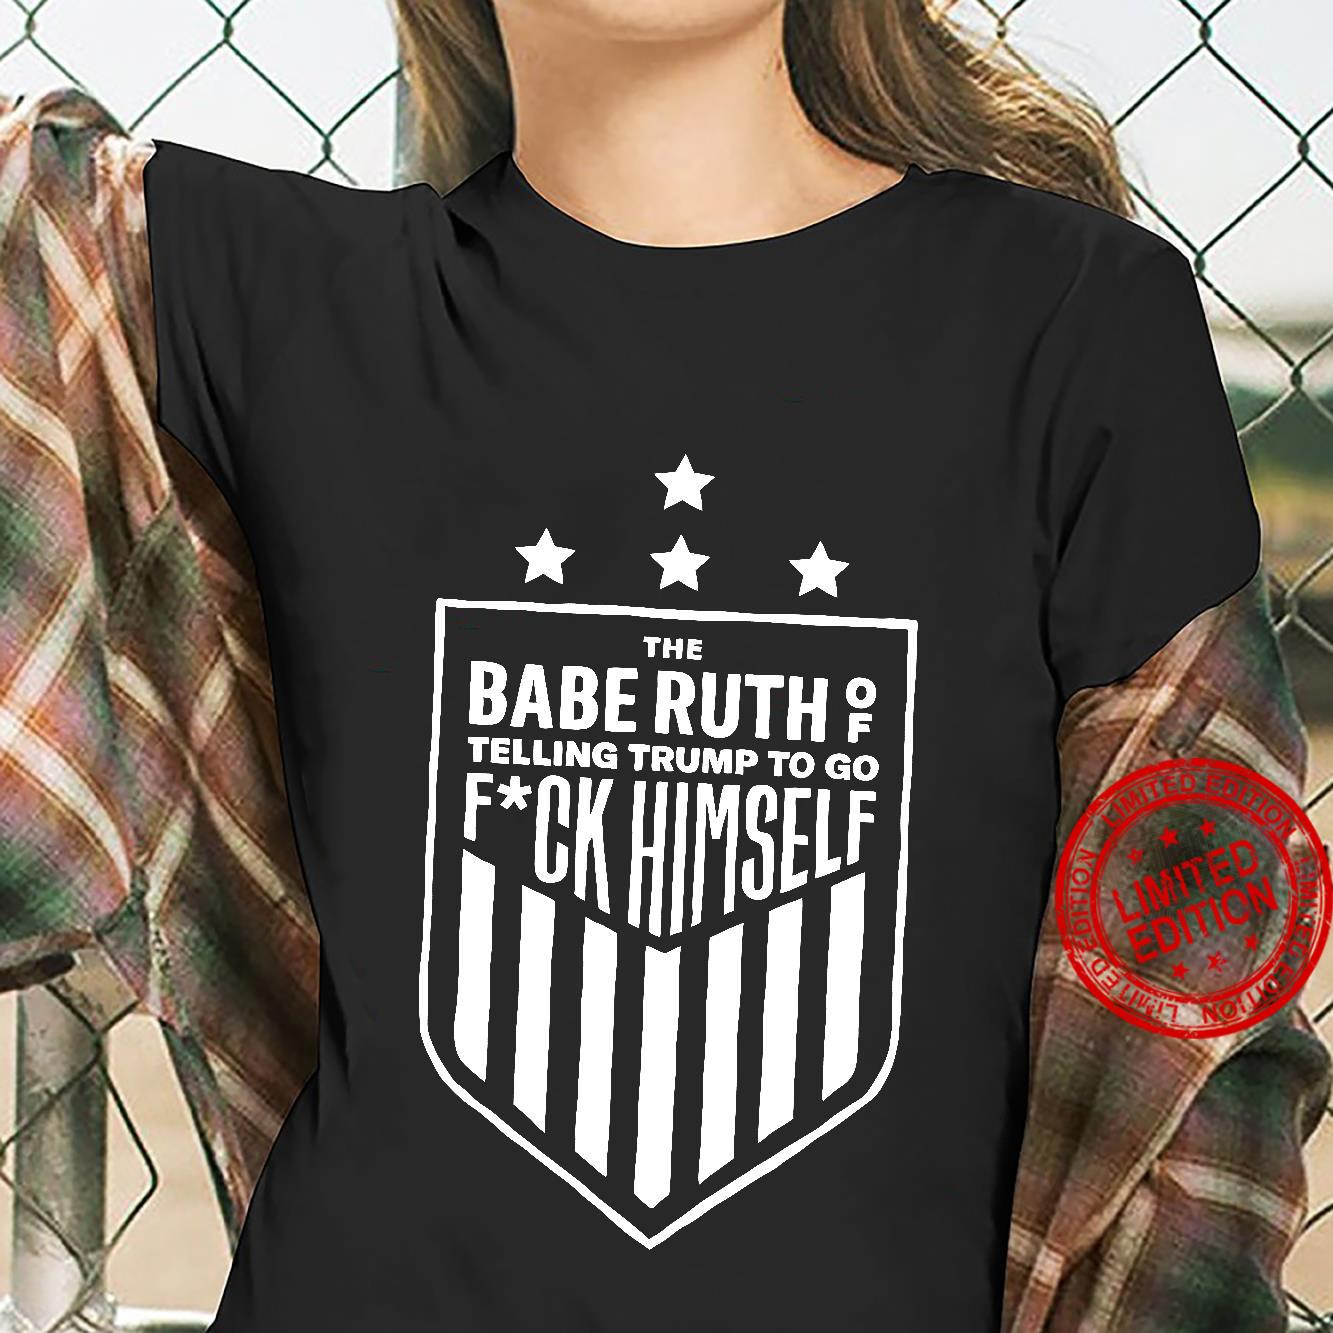 The Babe Ruth Of Telling Trump To Go Fuck Himself black shirt ladies tee